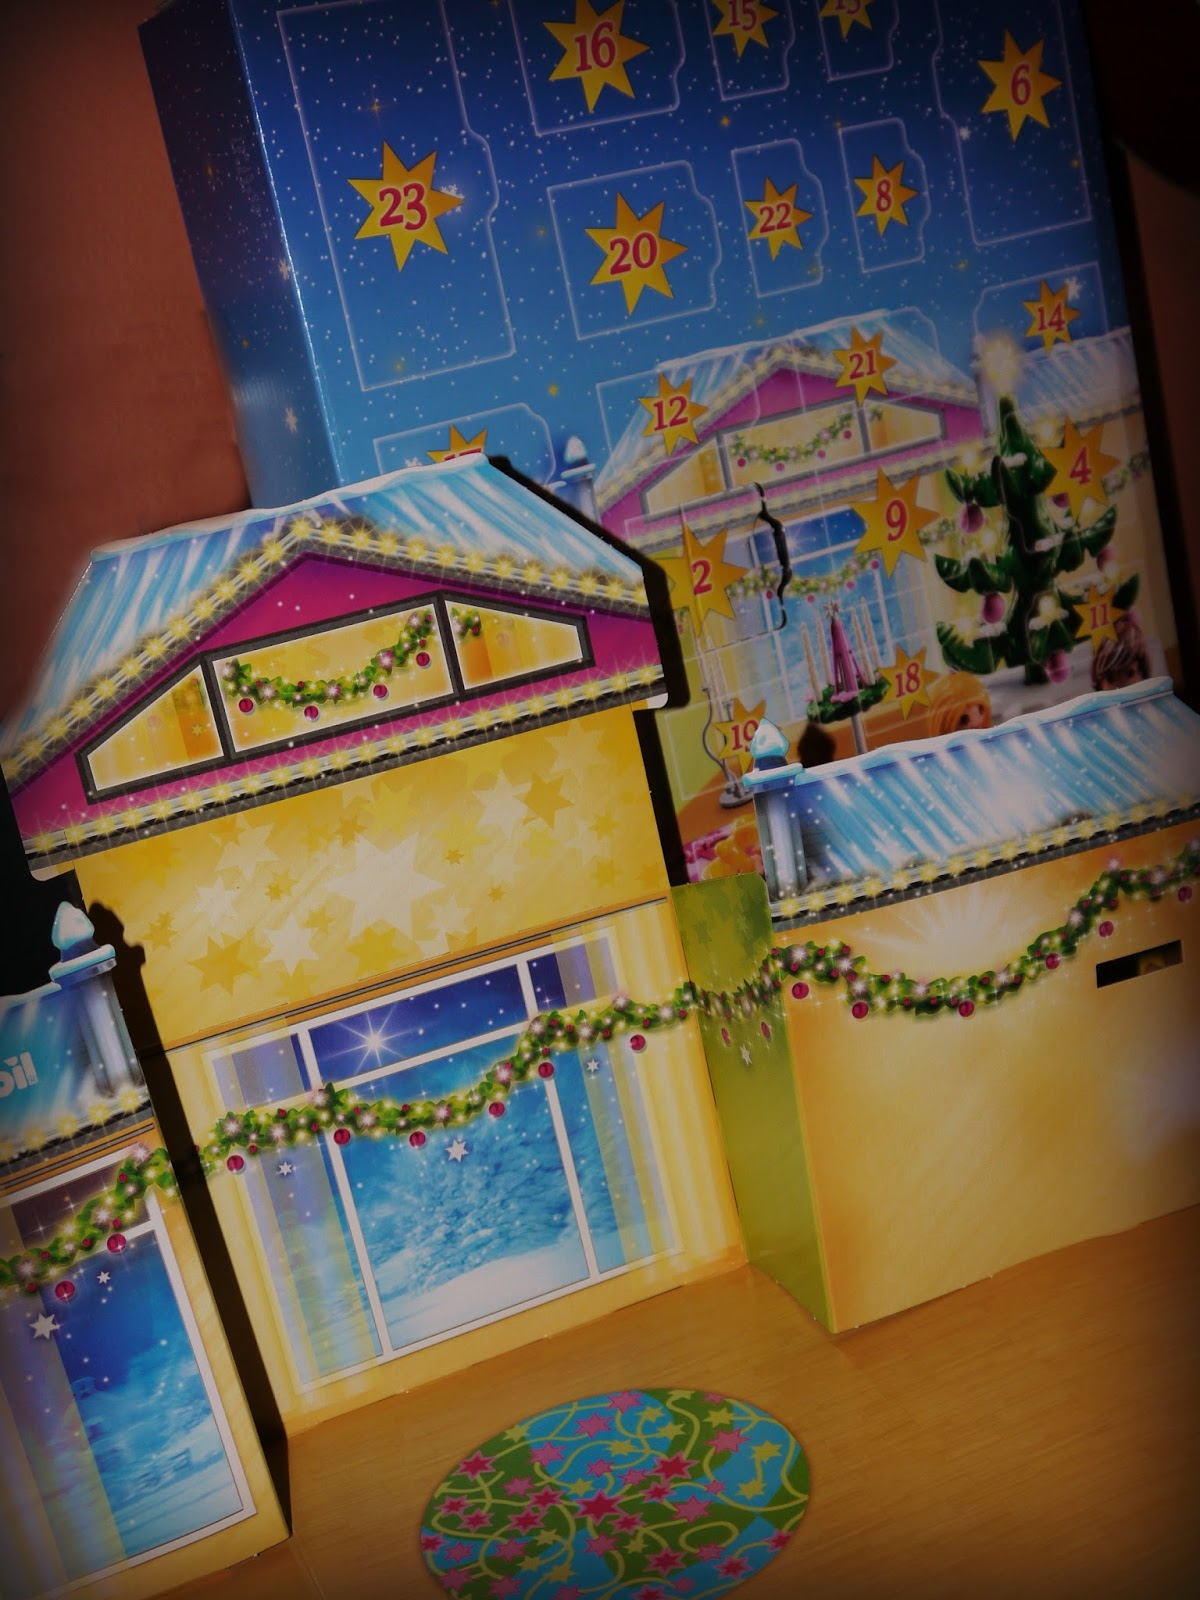 Advent Calendar Ideas Inside : Inside the wendy house counting down to christmas with a